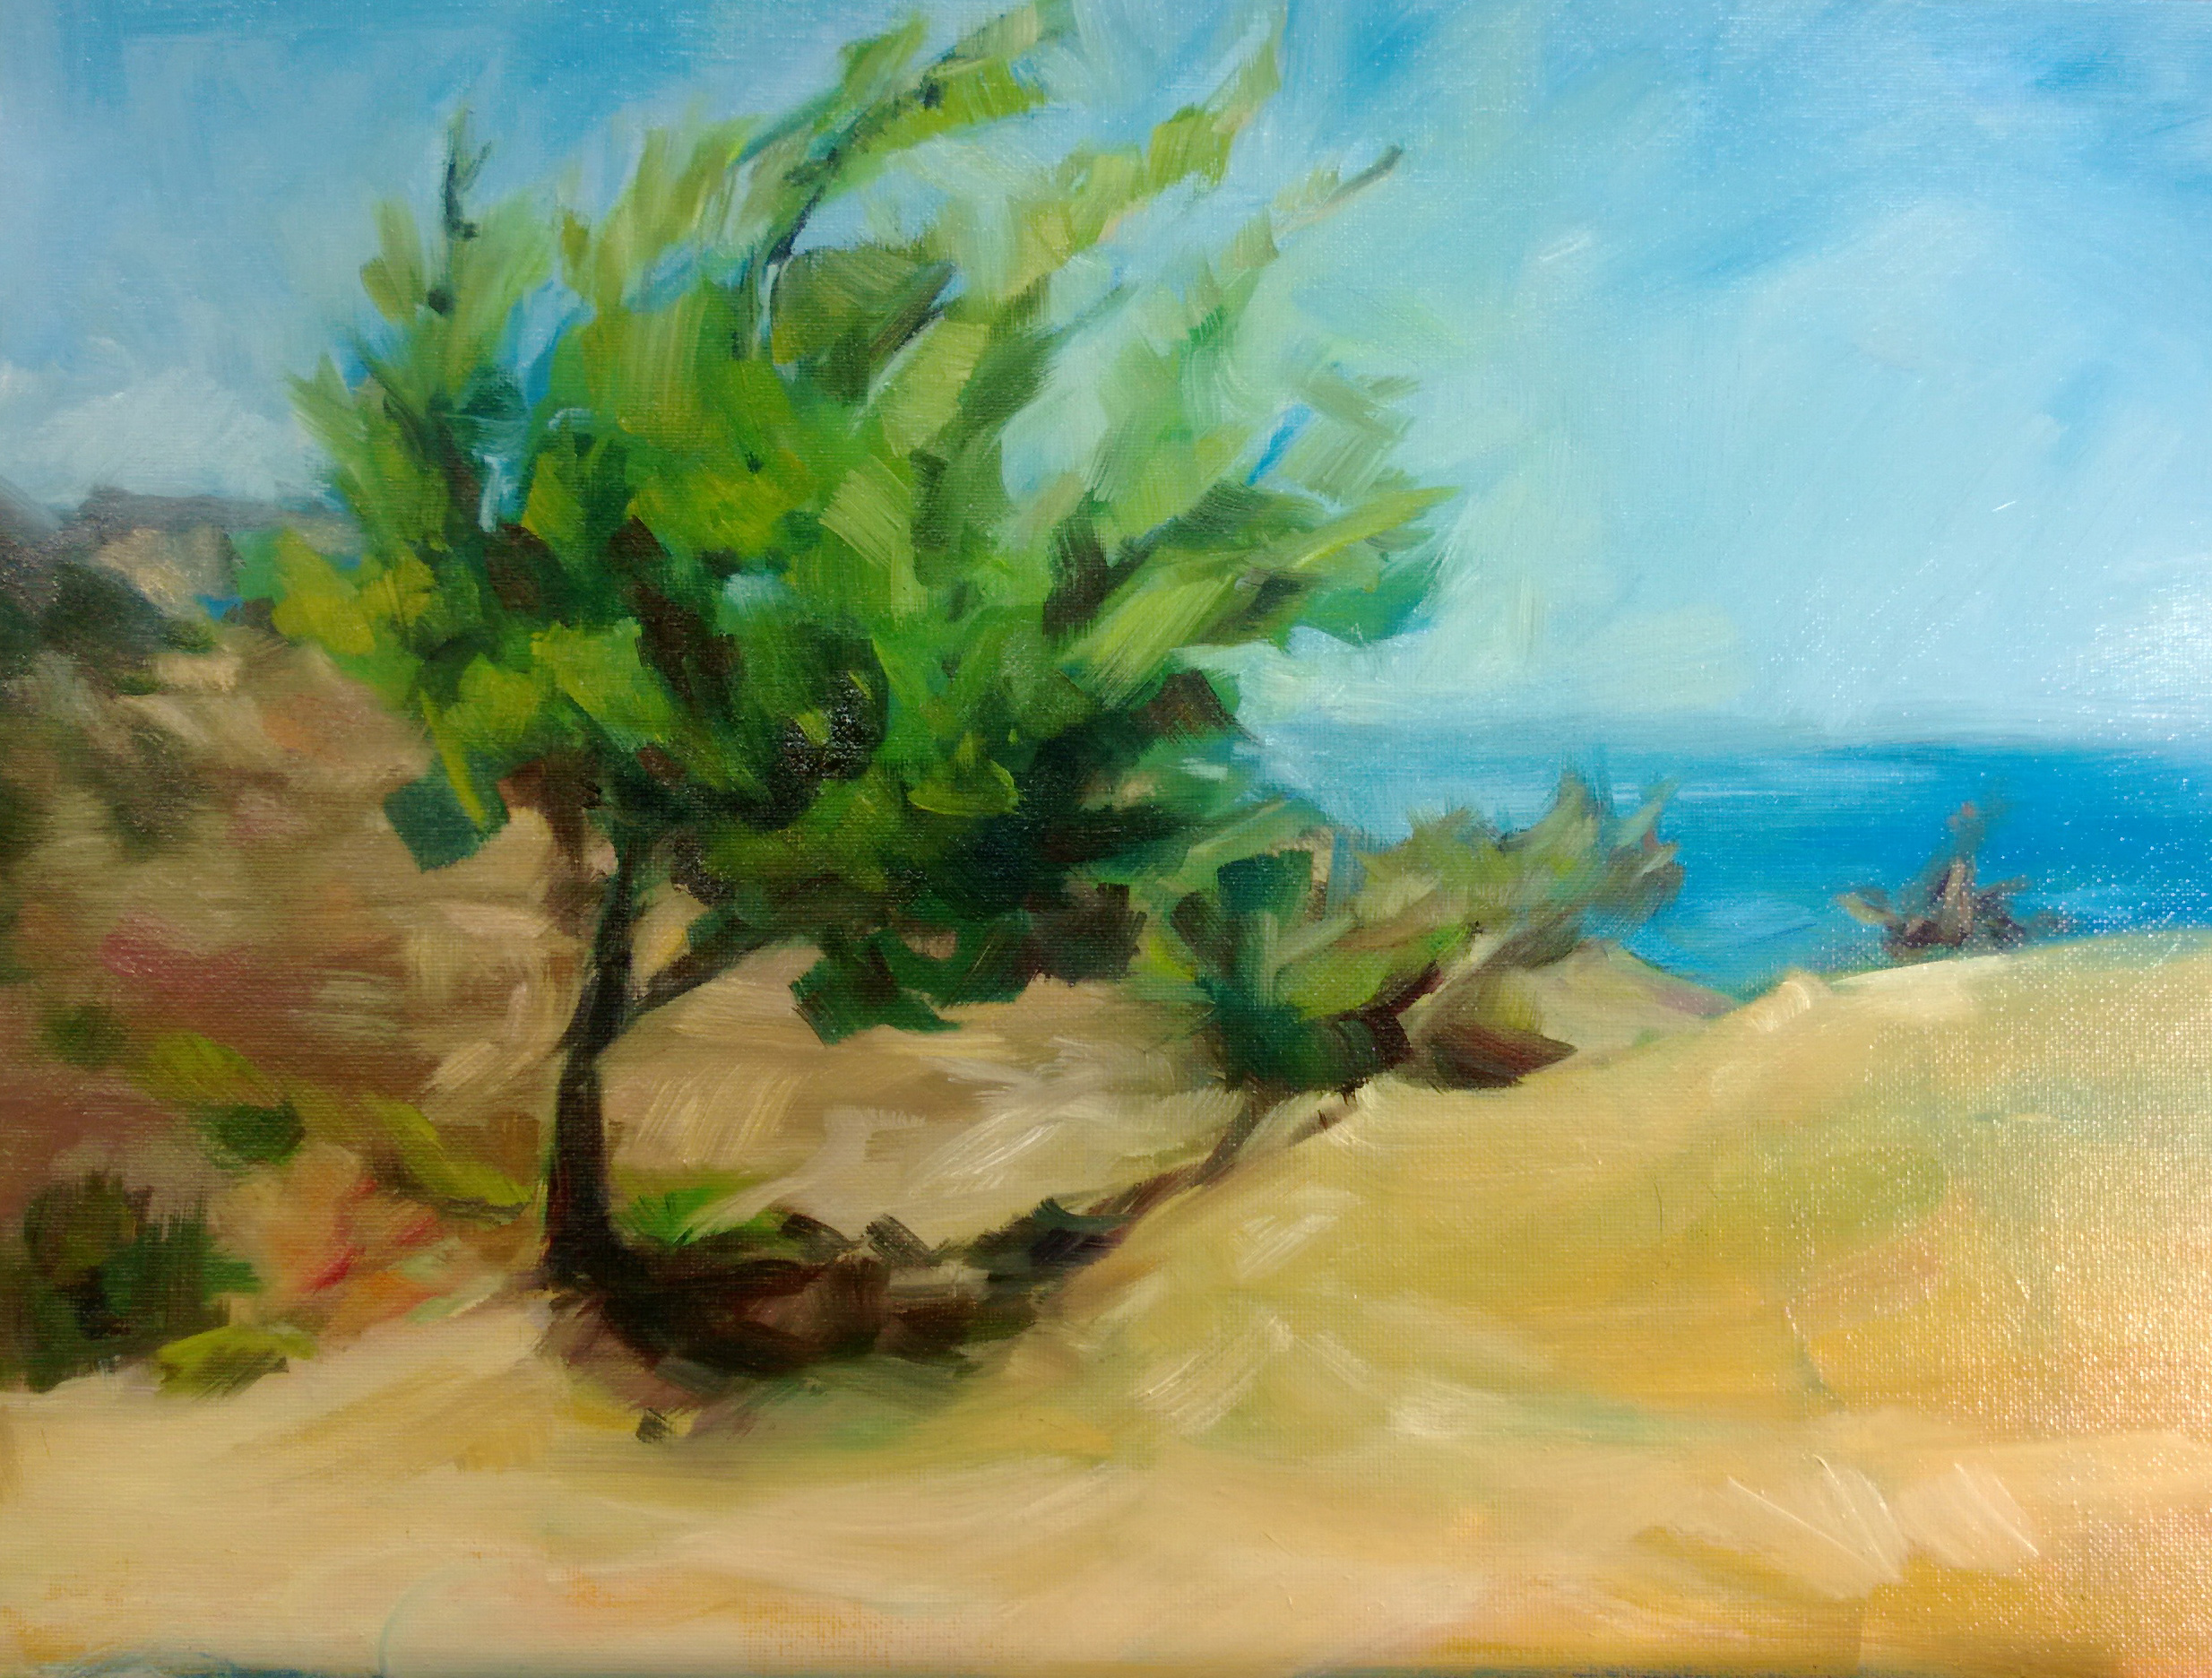 Painting of an olive tree on the Mediterranean Coast.